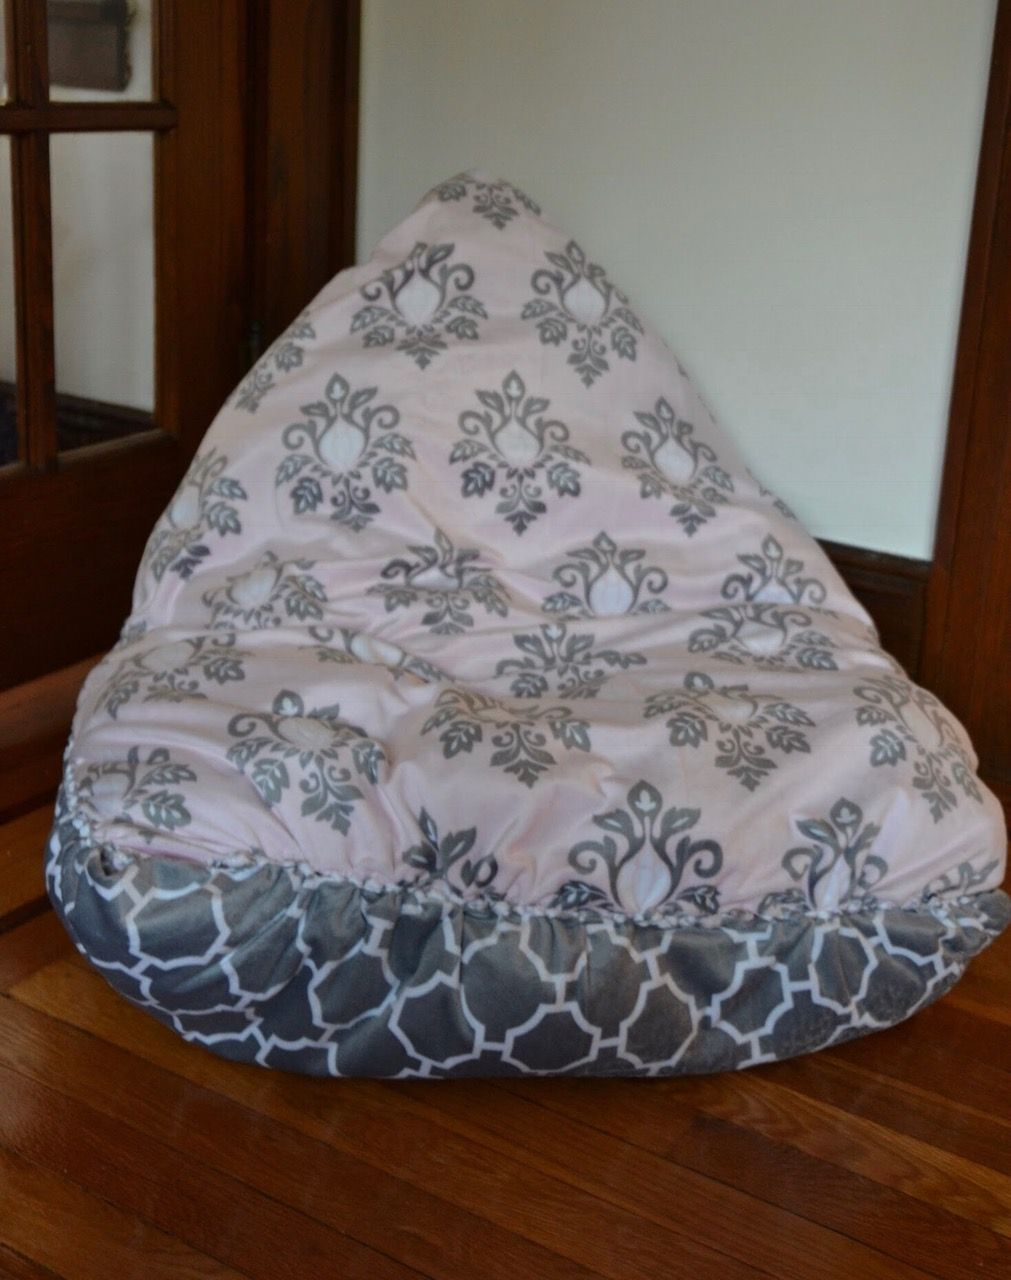 This No-Sew DIY Bean Bag Chair Is A Snap To Make